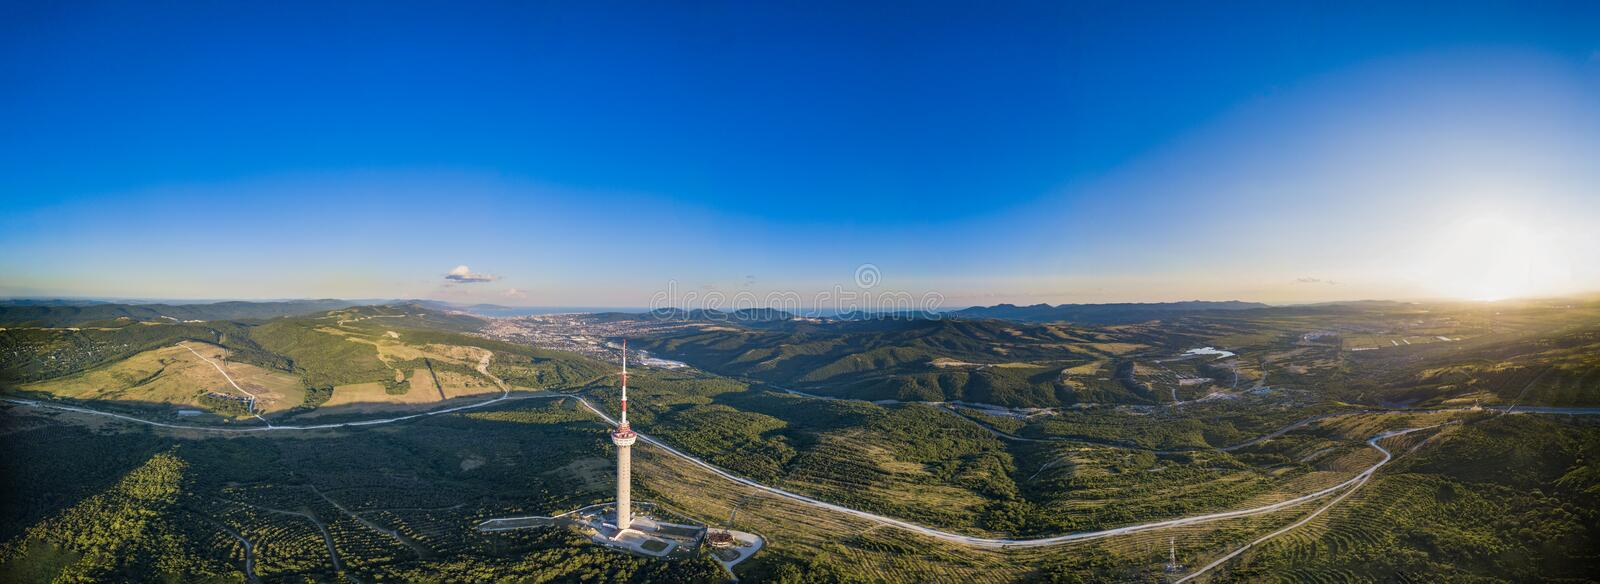 Novorossiysk city from a height at sunset stock images